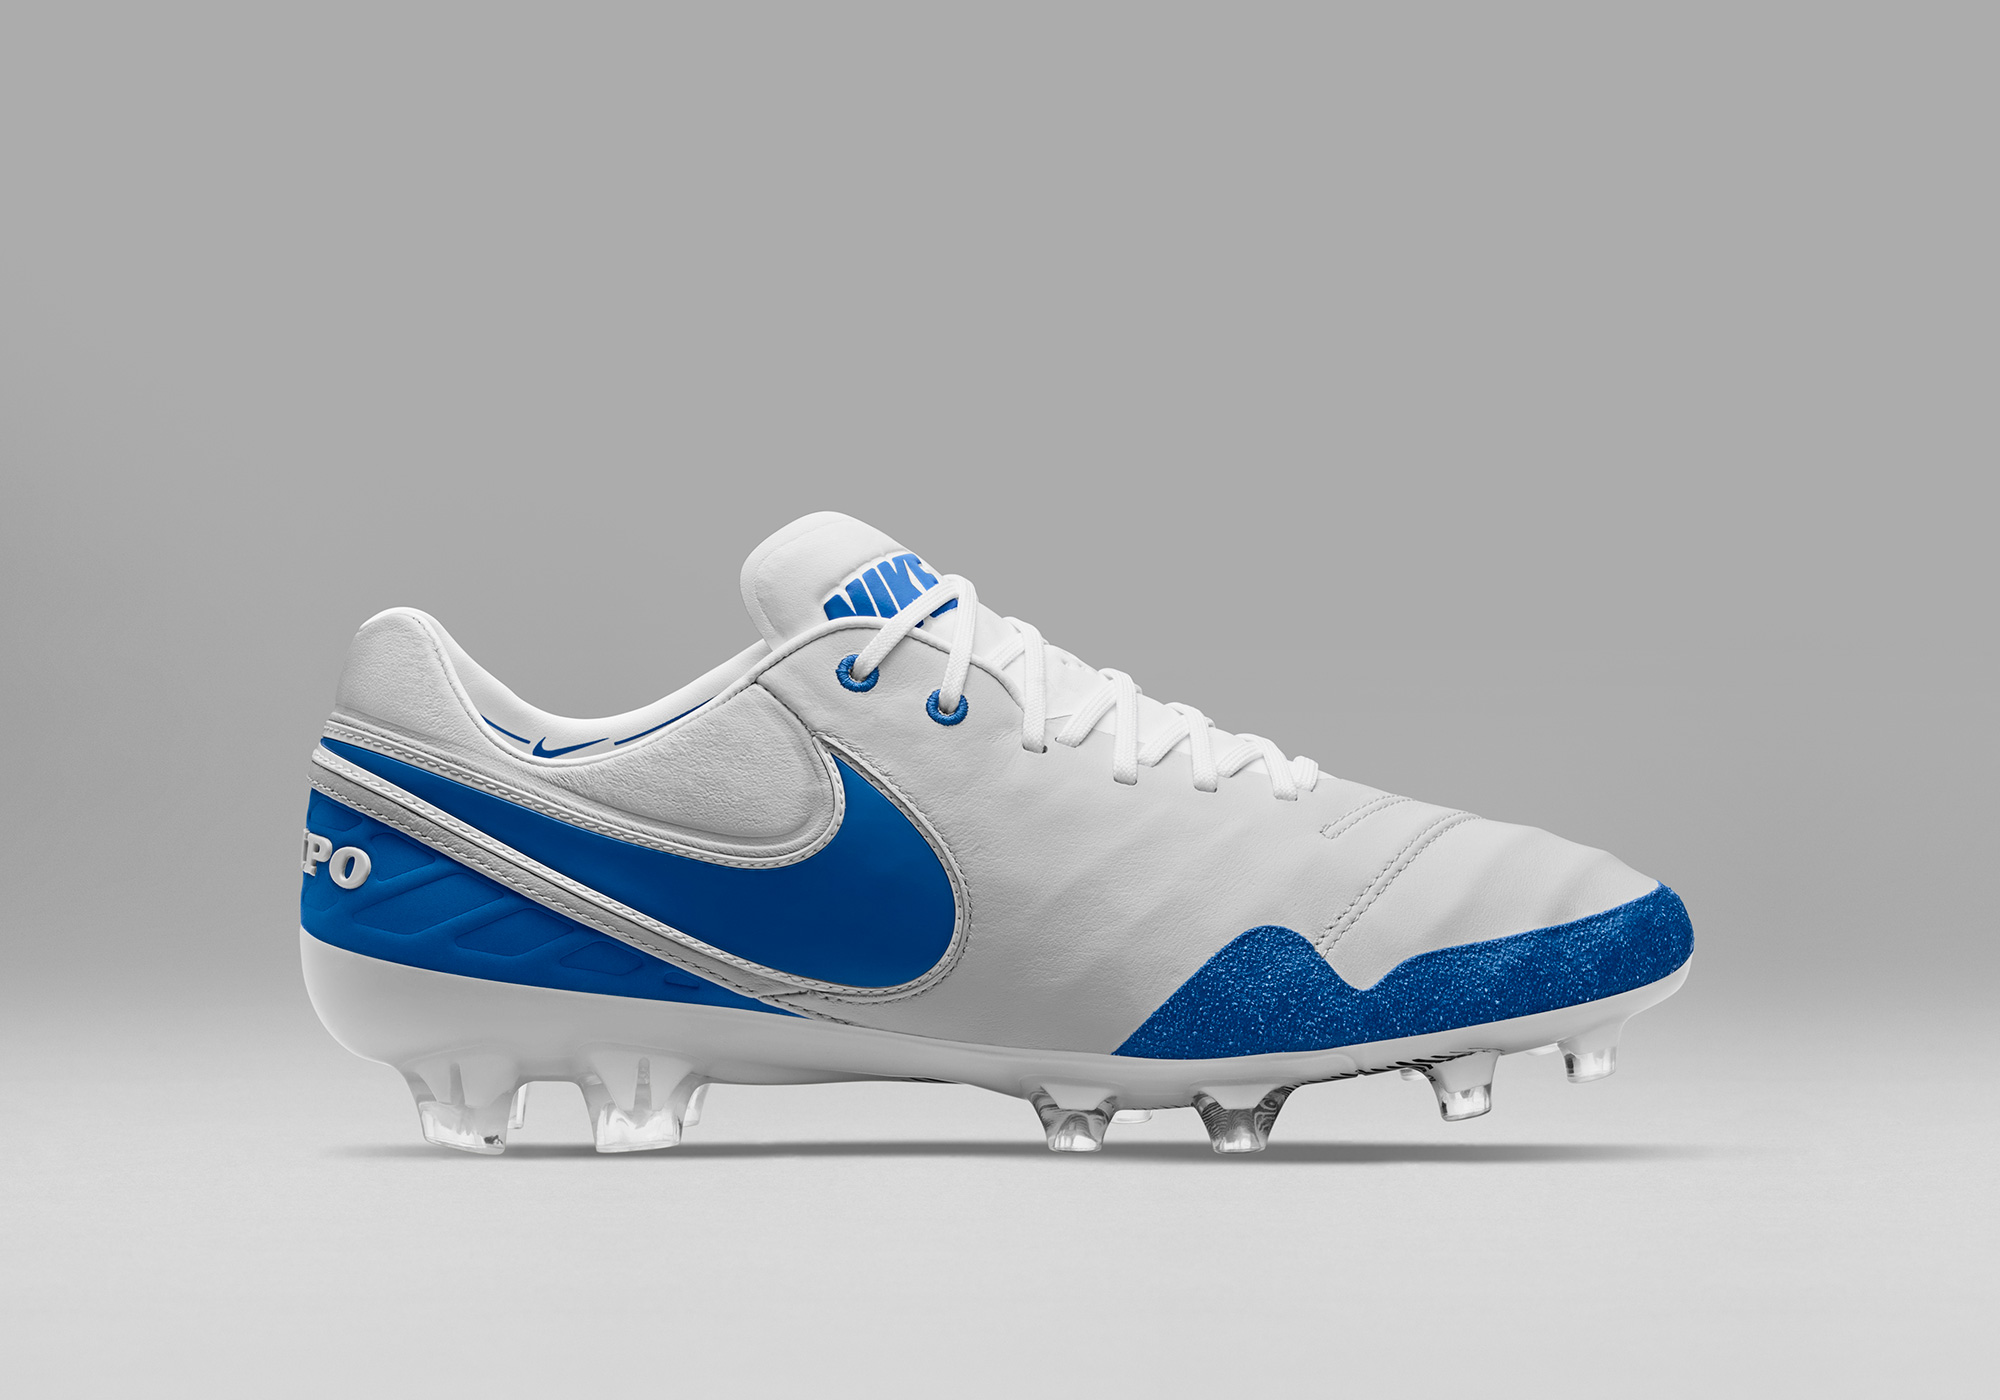 SP17_GFB_Revolution_Pack_835364-141_NIKE_TIEMPO_LEGEND_VI_FG_1_8_67262